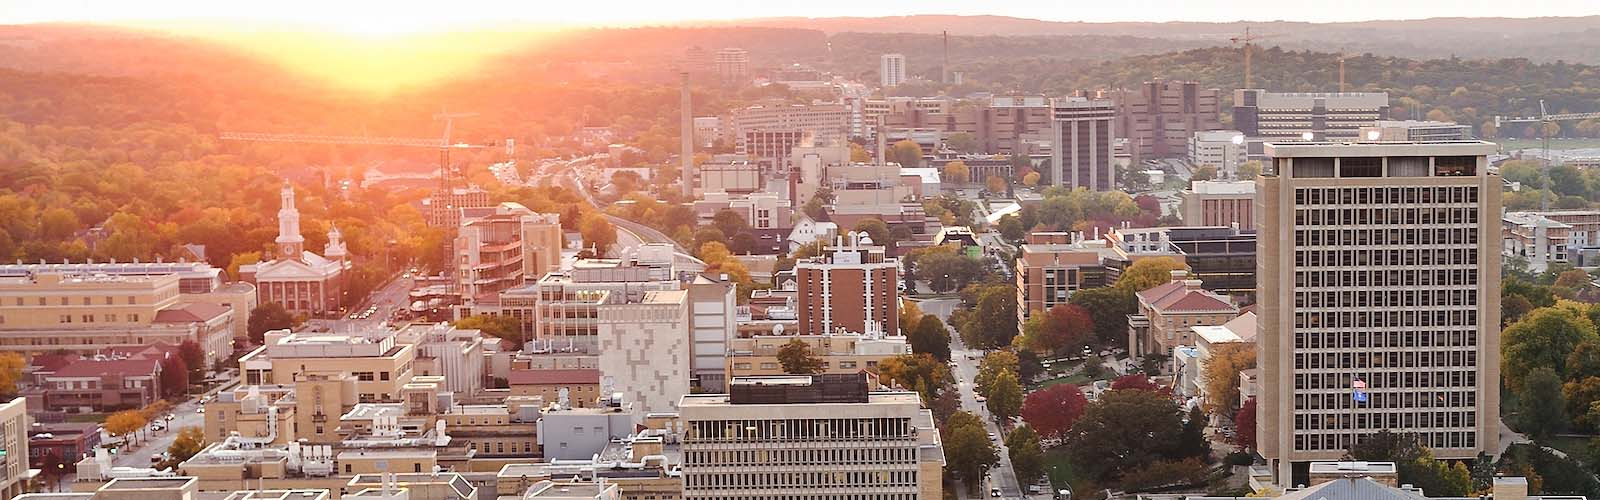 View of campus, including Van Hise Hall, at sunset